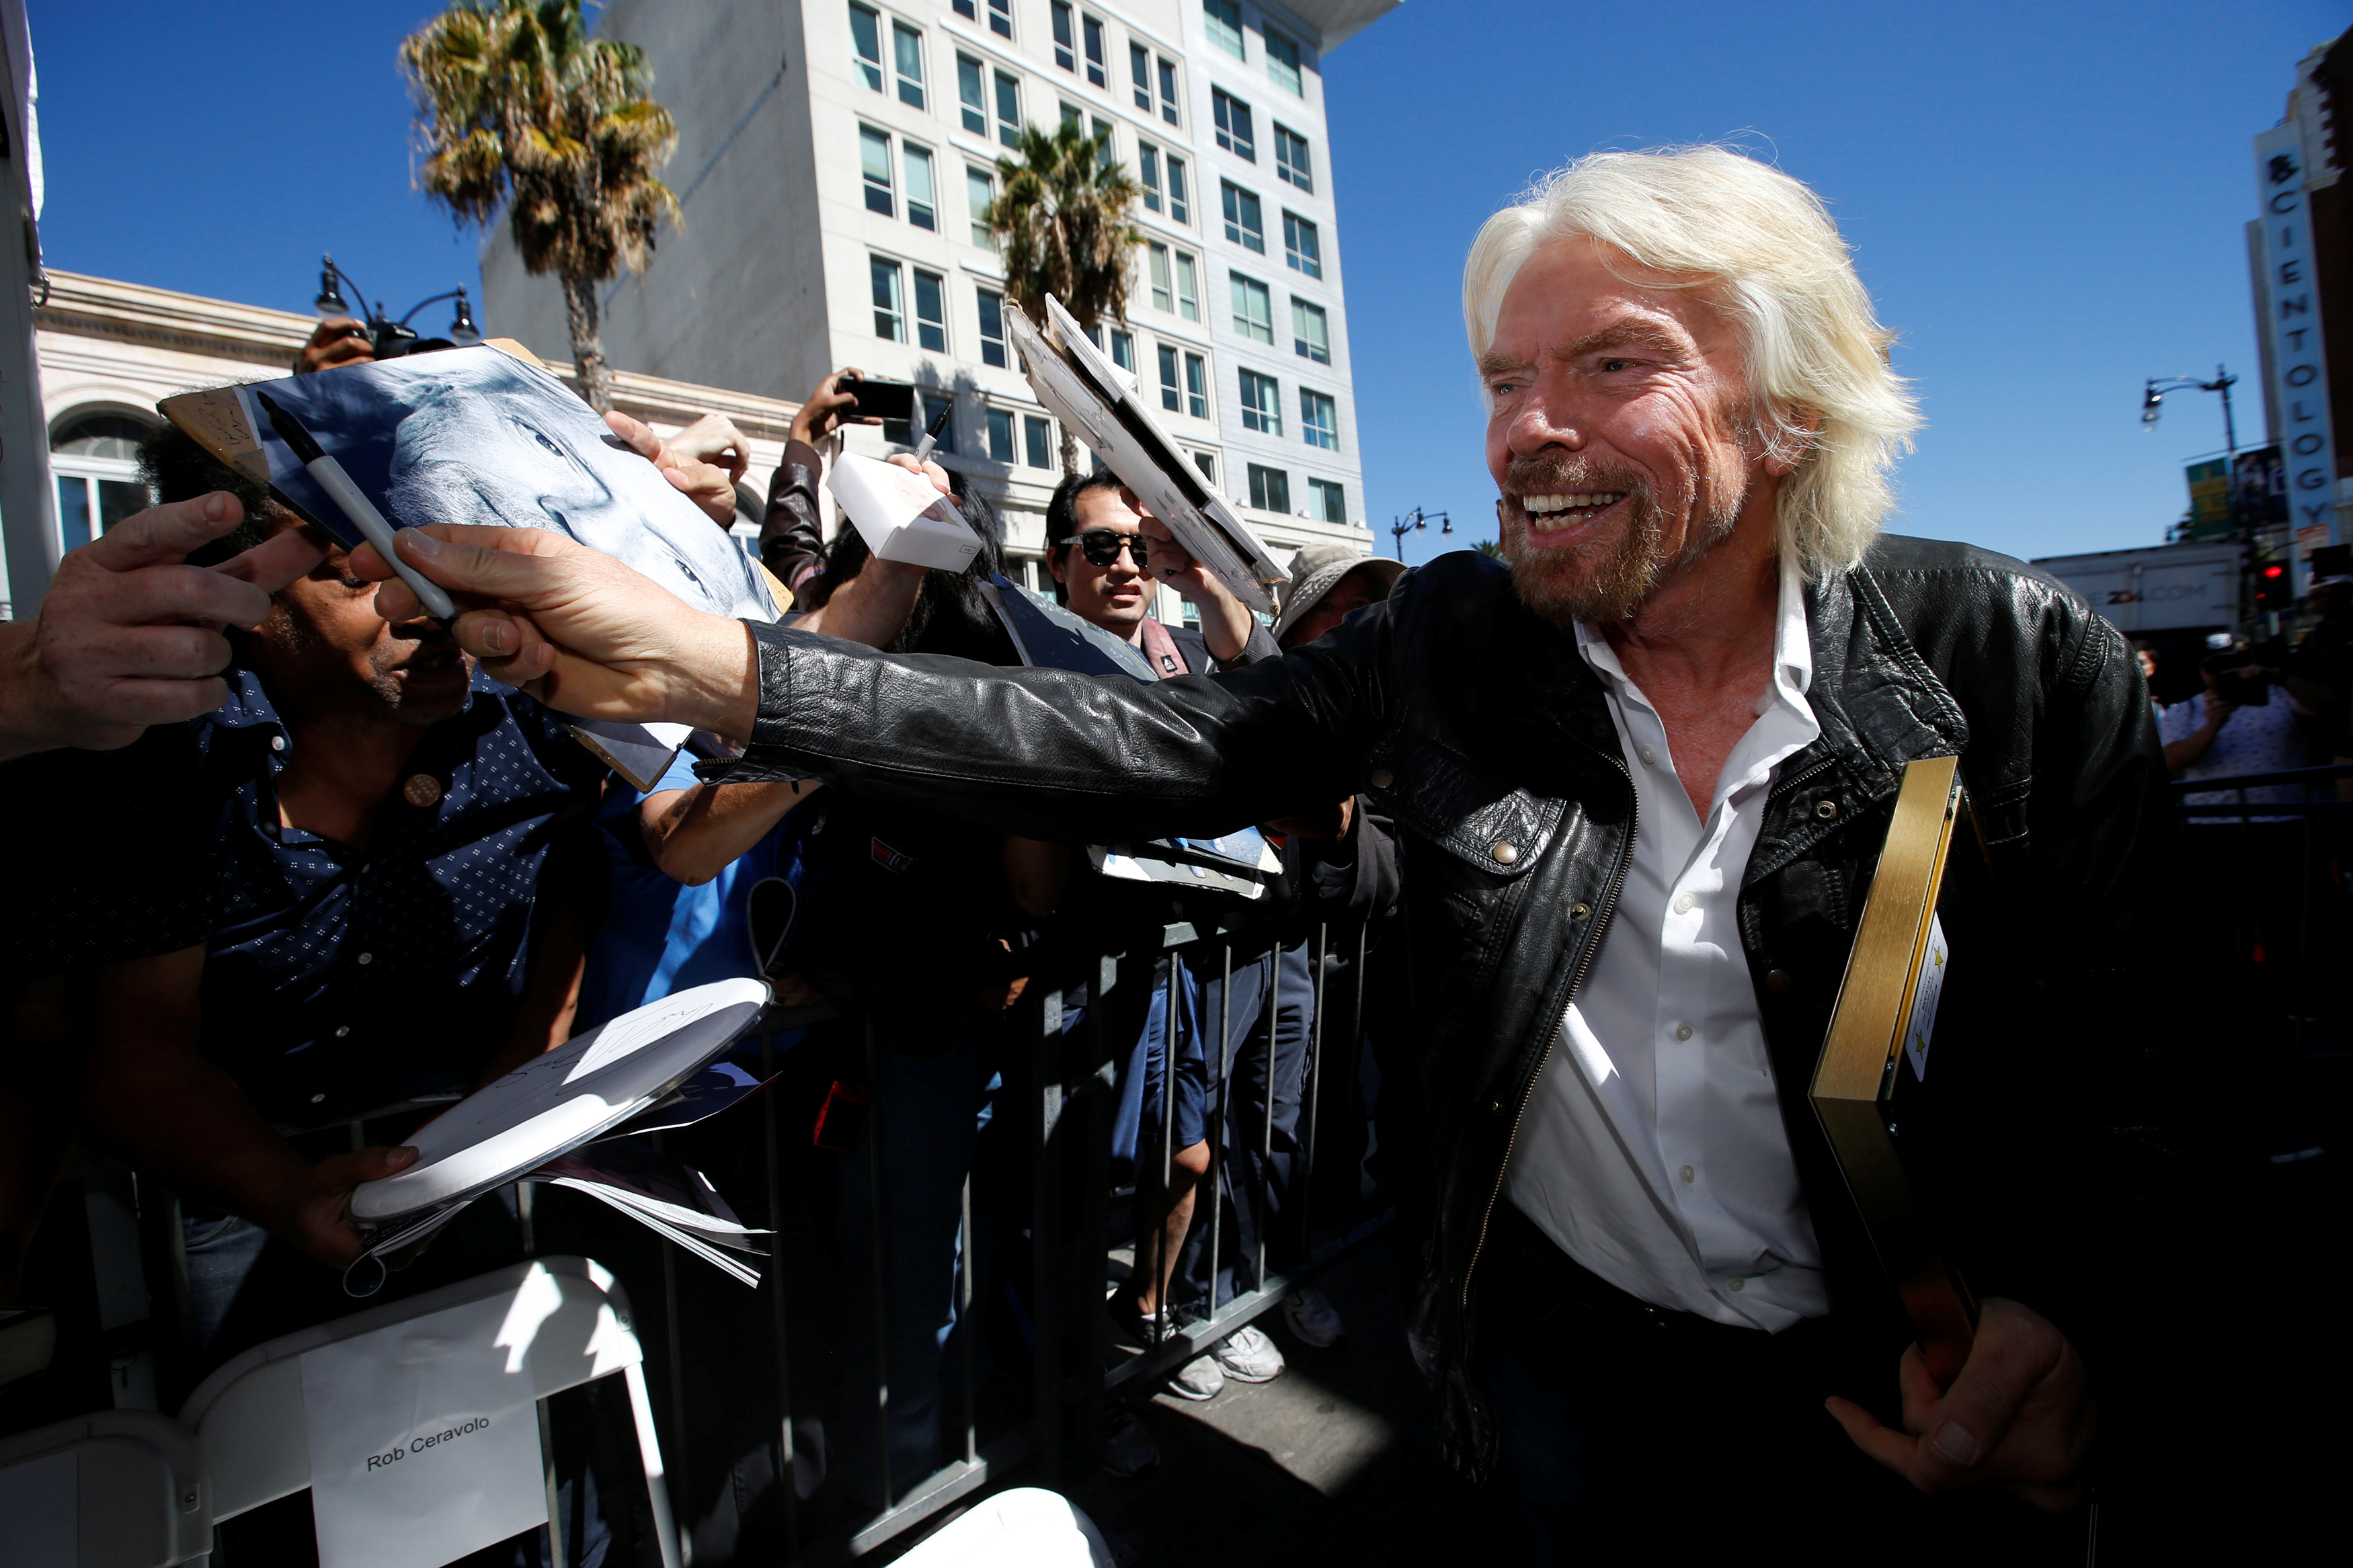 Branson signs autographs after unveiling his star on the Hollywood Walk of Fame in Los Angeles